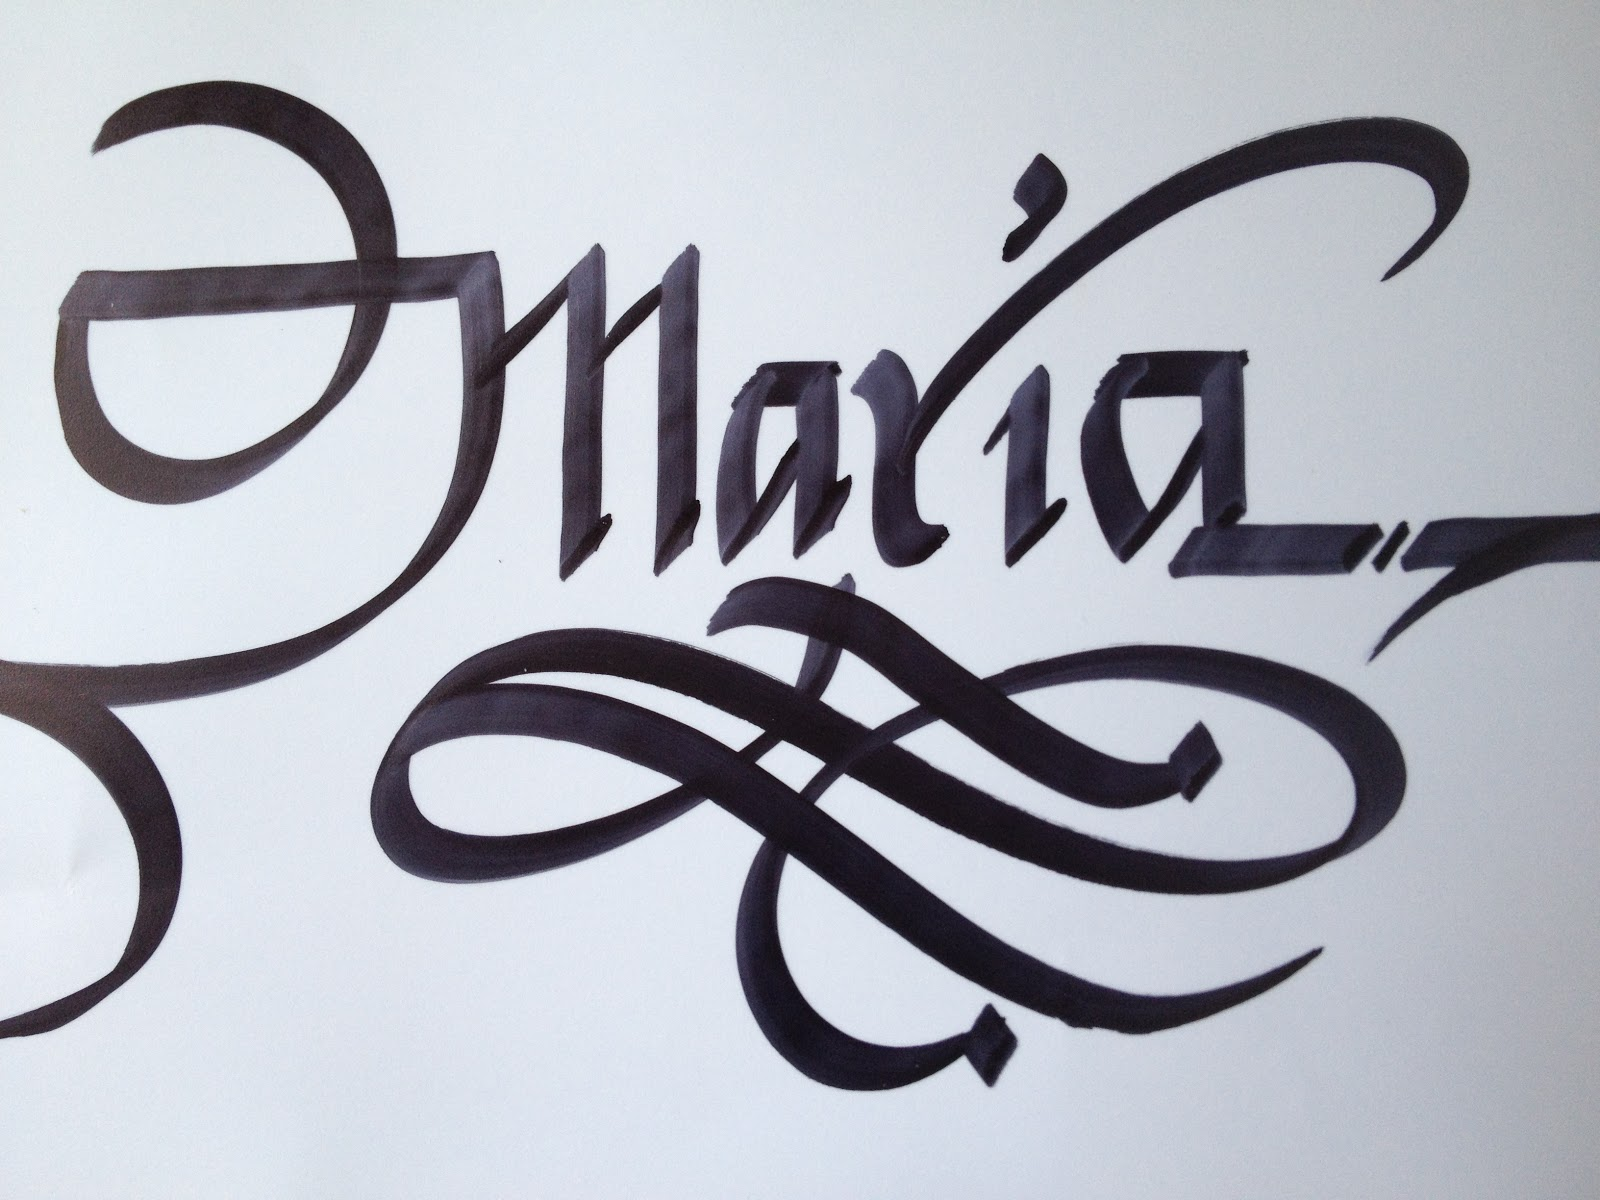 Calligraphy art august 2012 My name in calligraphy